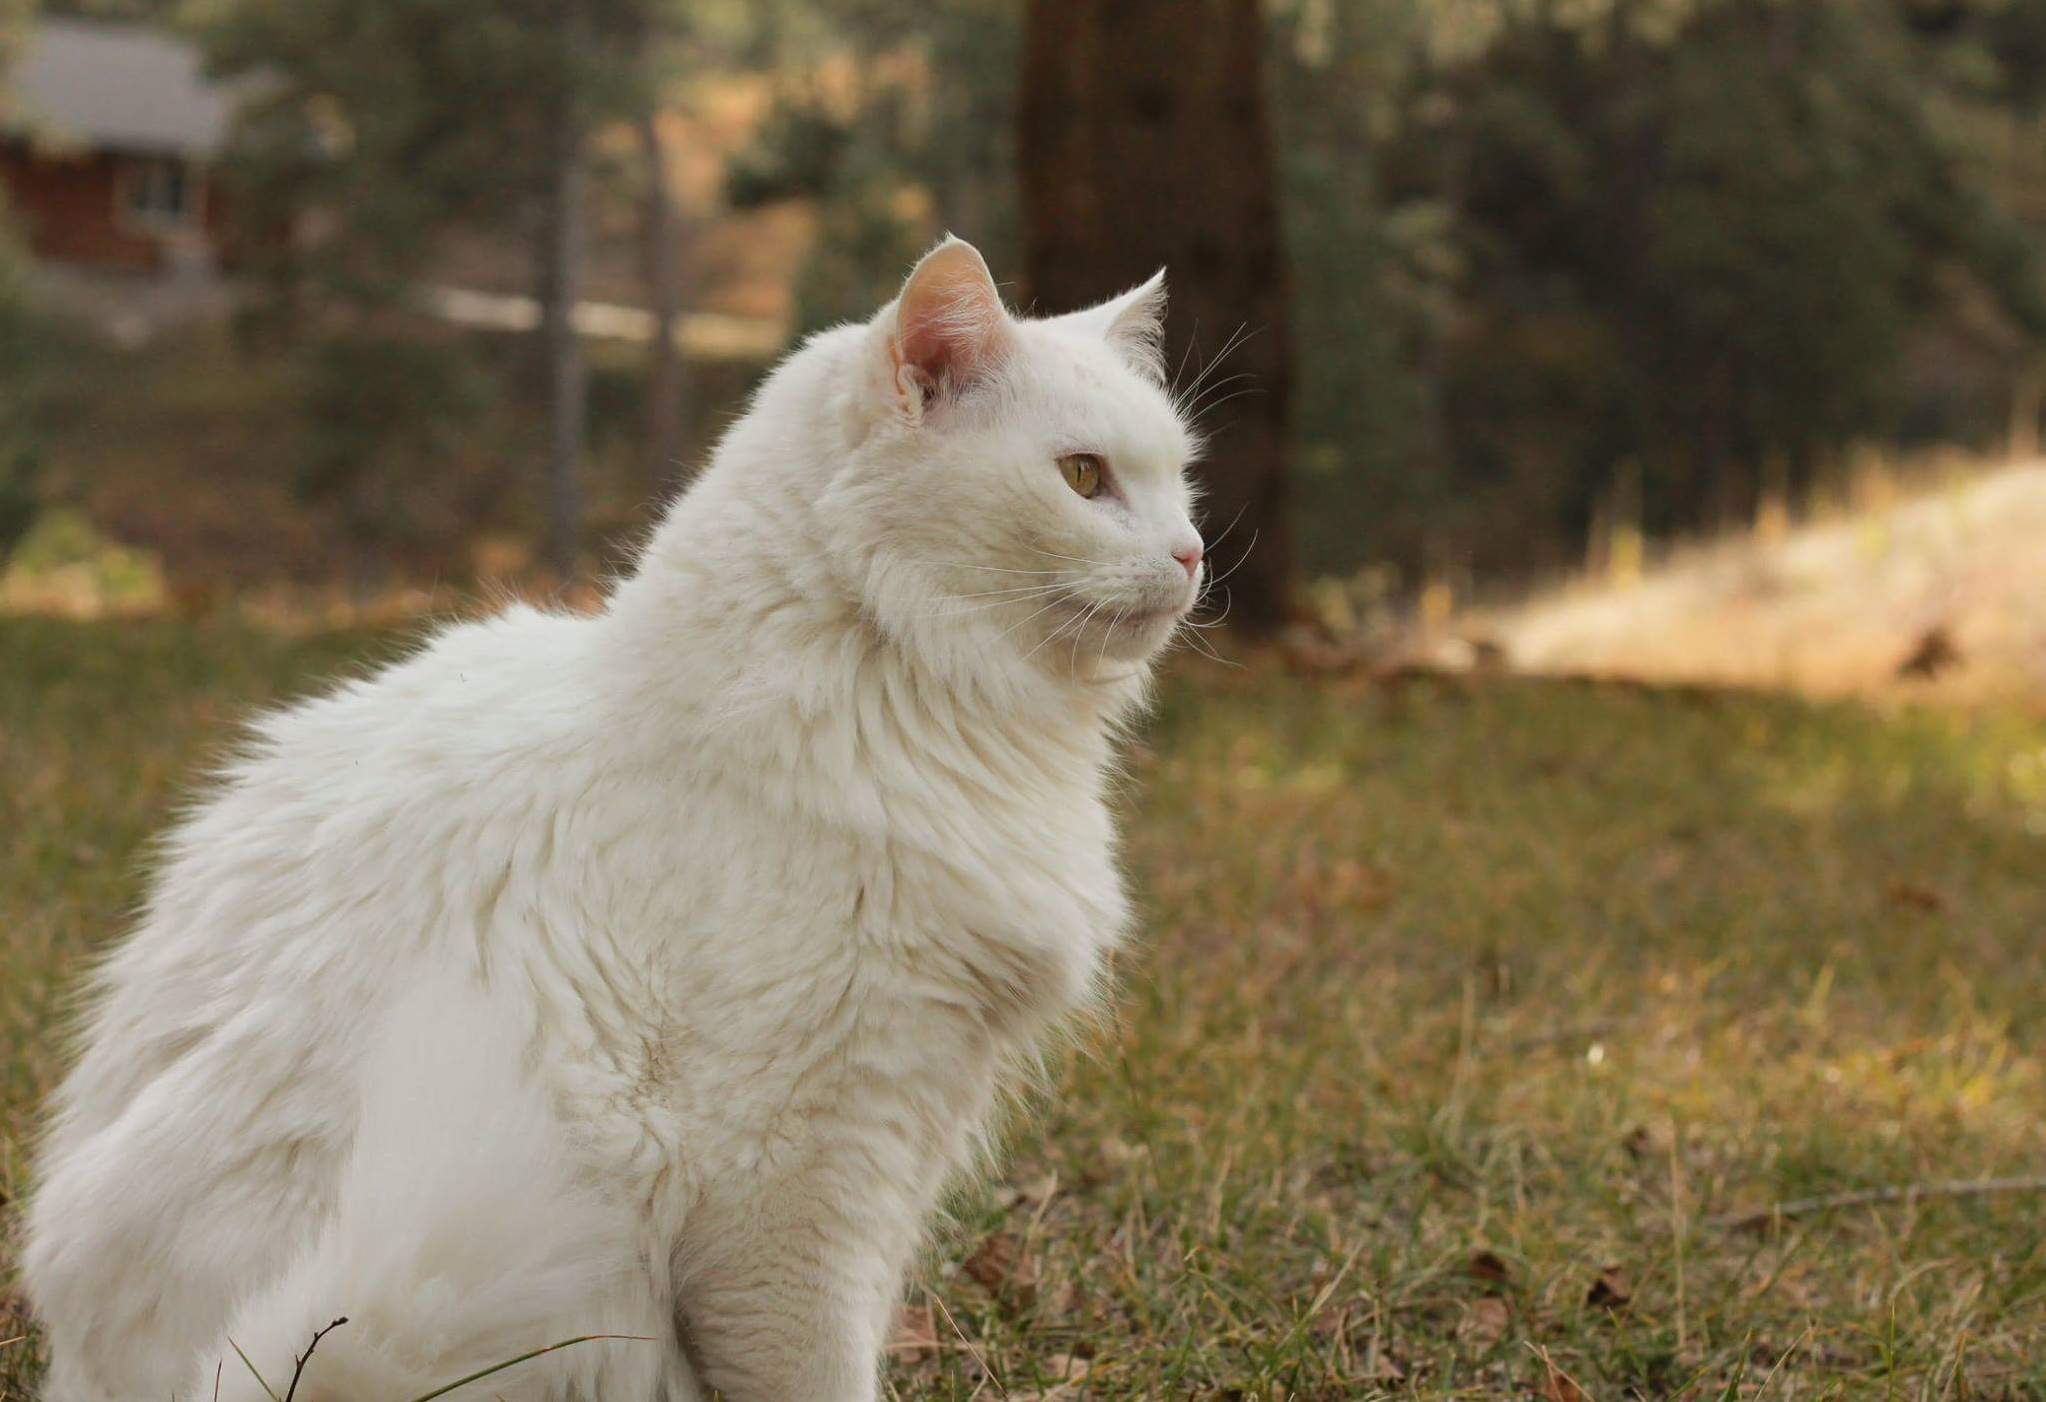 My majestic 17 year old floof.